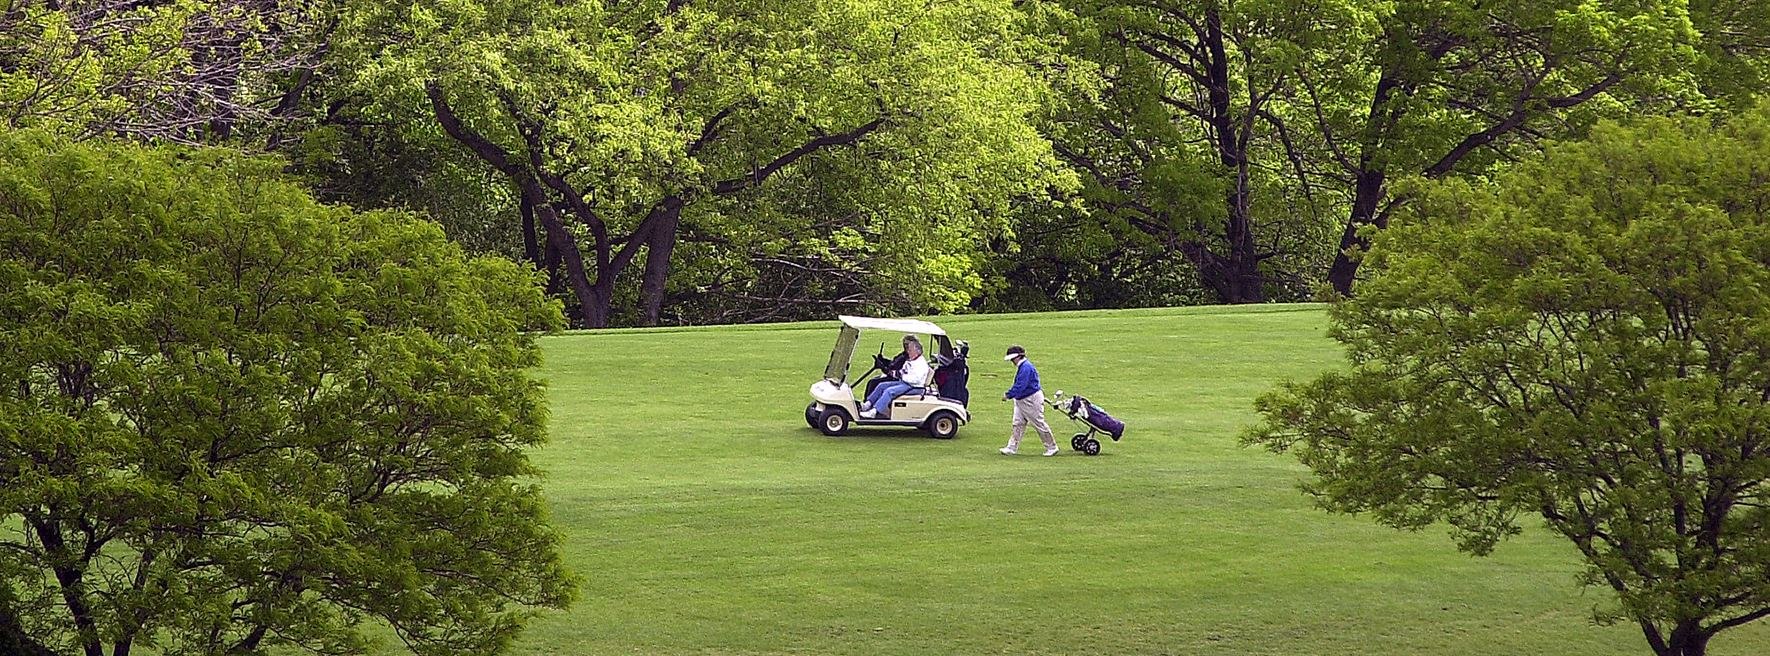 Mt. Lebanon's golf course is just one of its top-notch recreation facilities that provide fun and